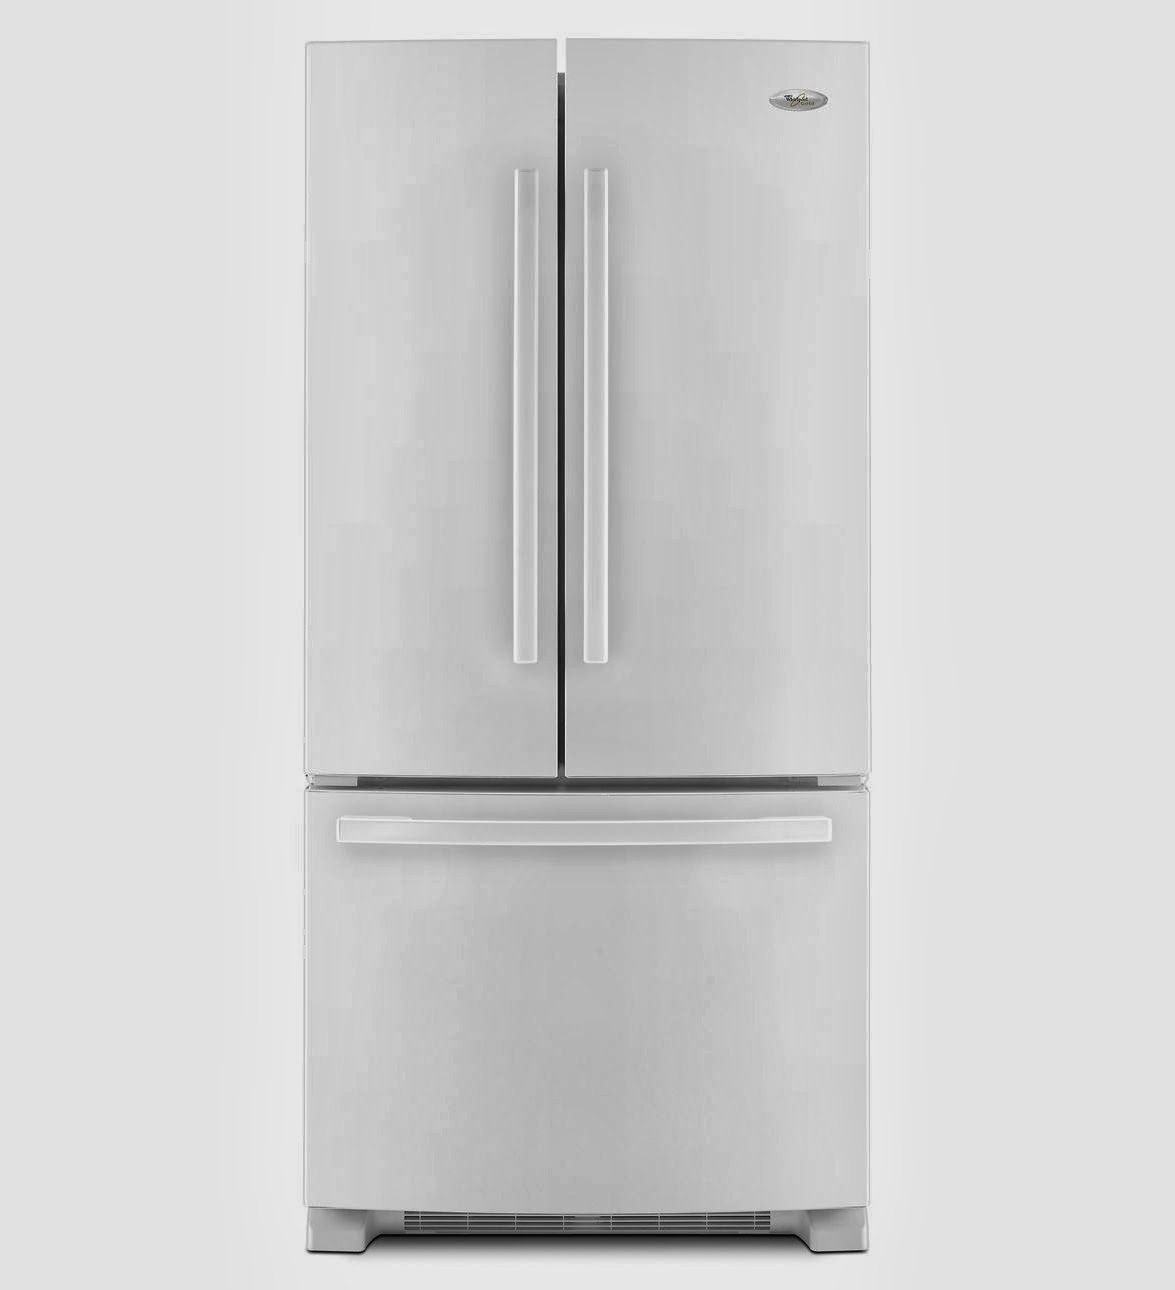 1290 #696962 French Door Refrigerator White Whirlpool French Door Refrigerator  wallpaper French Doors Refrigerators 35551175